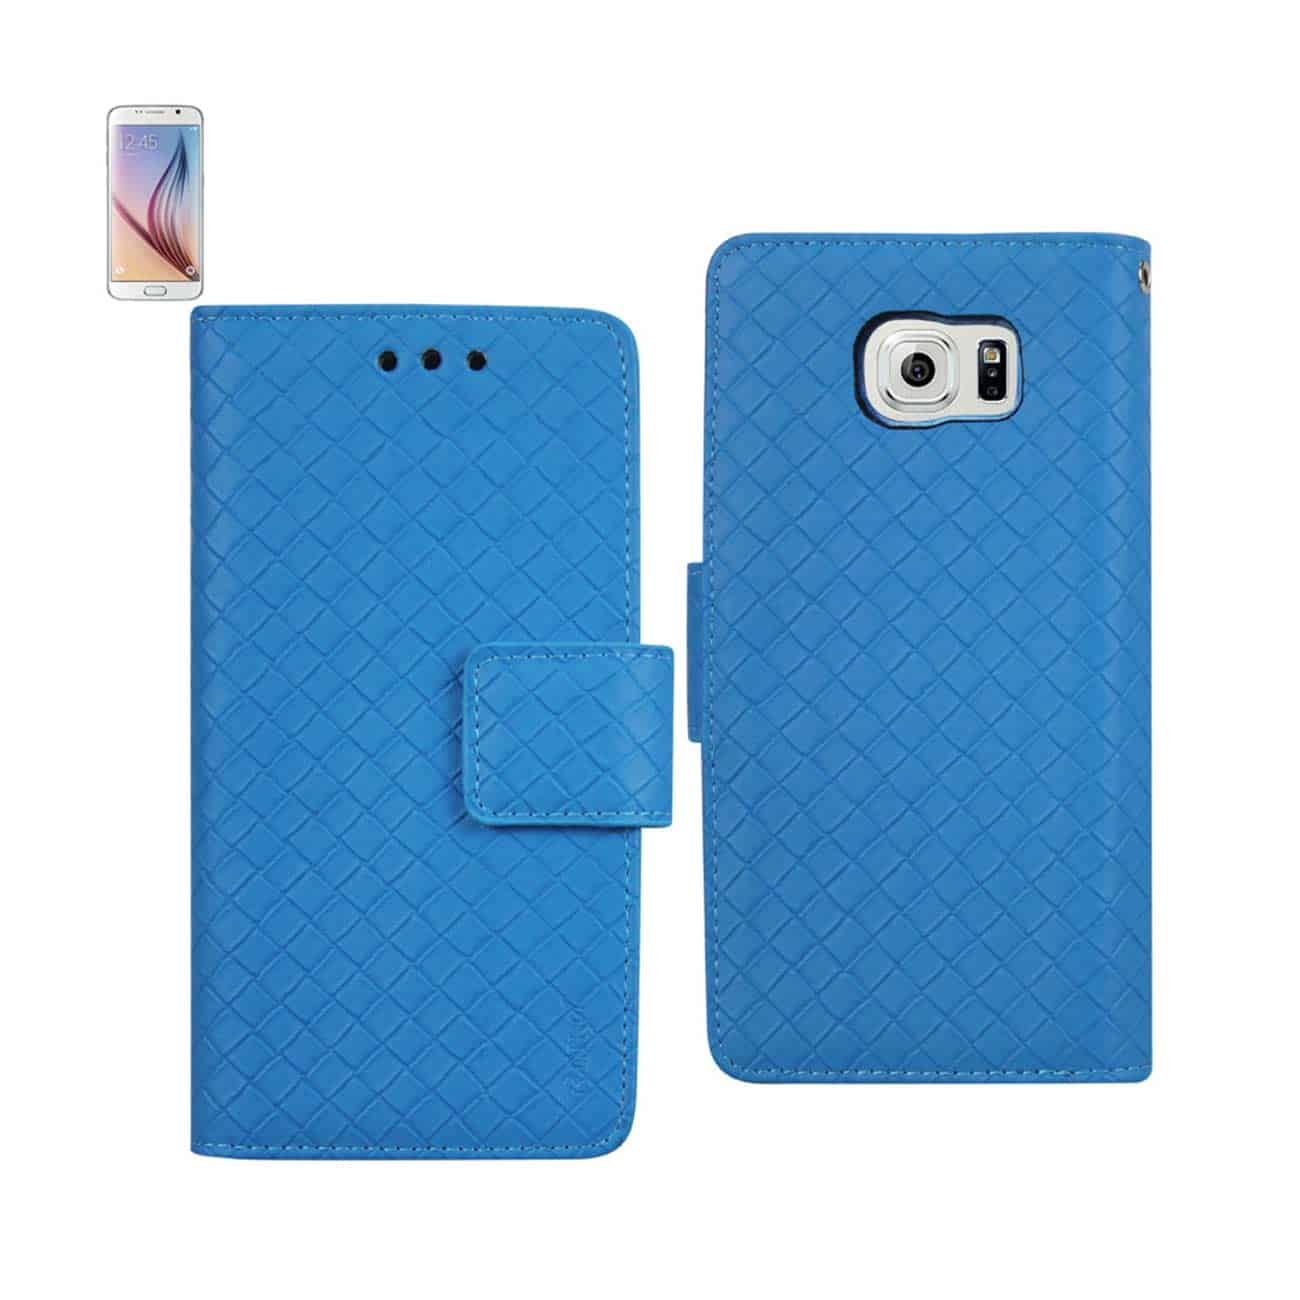 SAMSUNG GALAXY S6 BRAIDED WALLET CASE IN BLUE